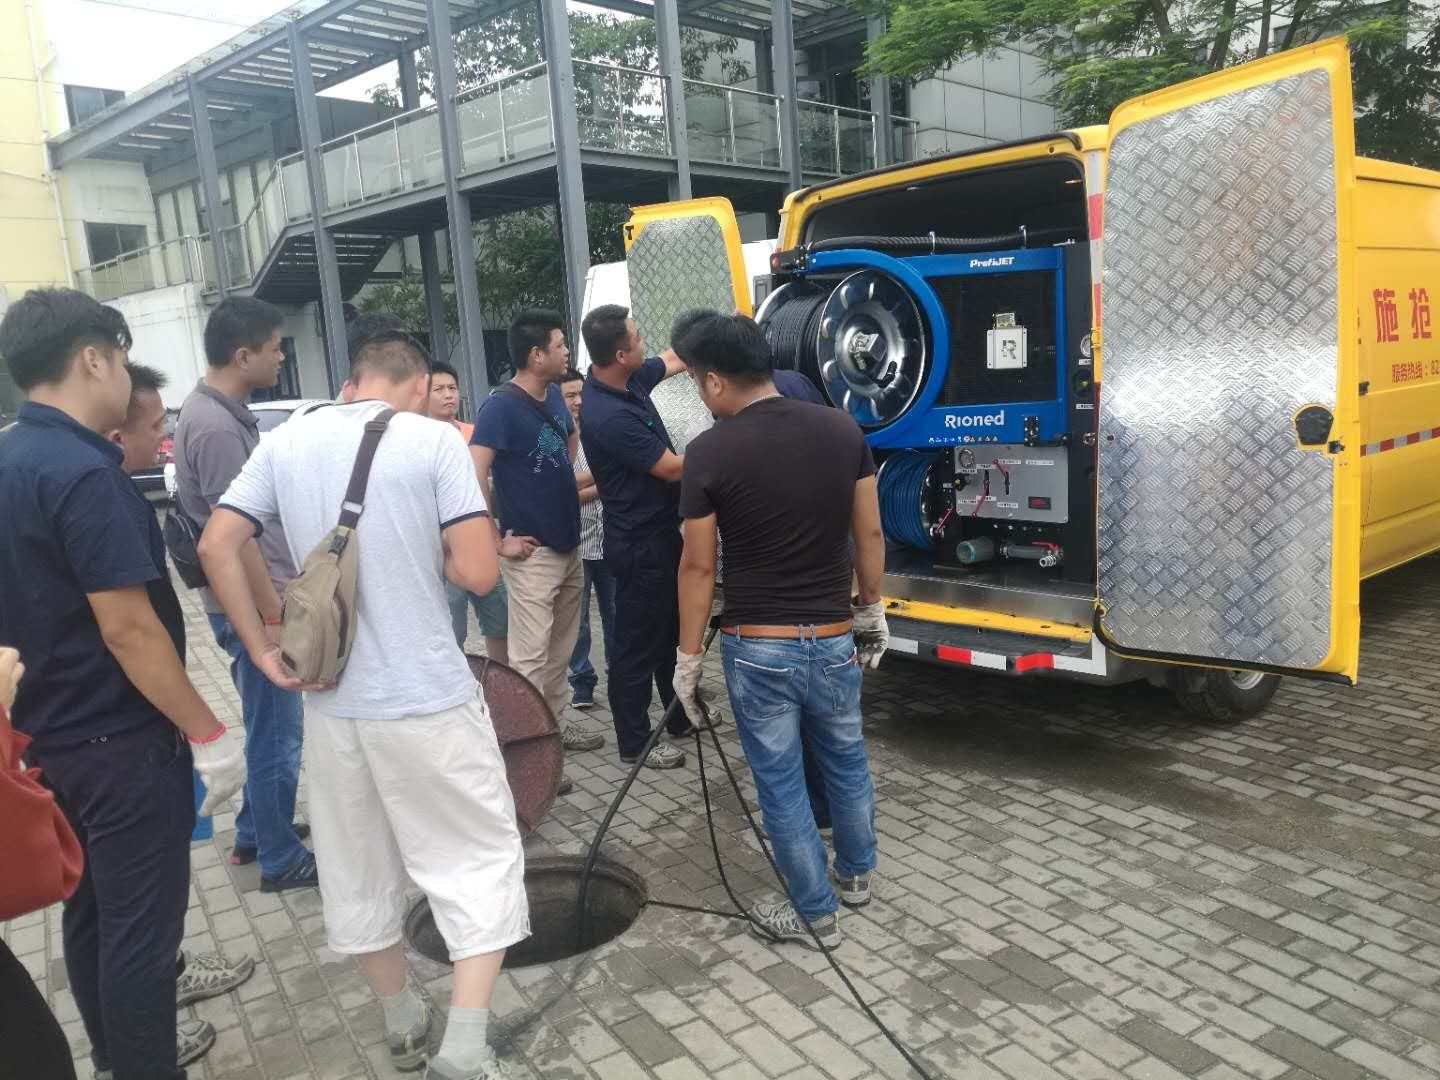 China Drain Cleaning Equipment Market